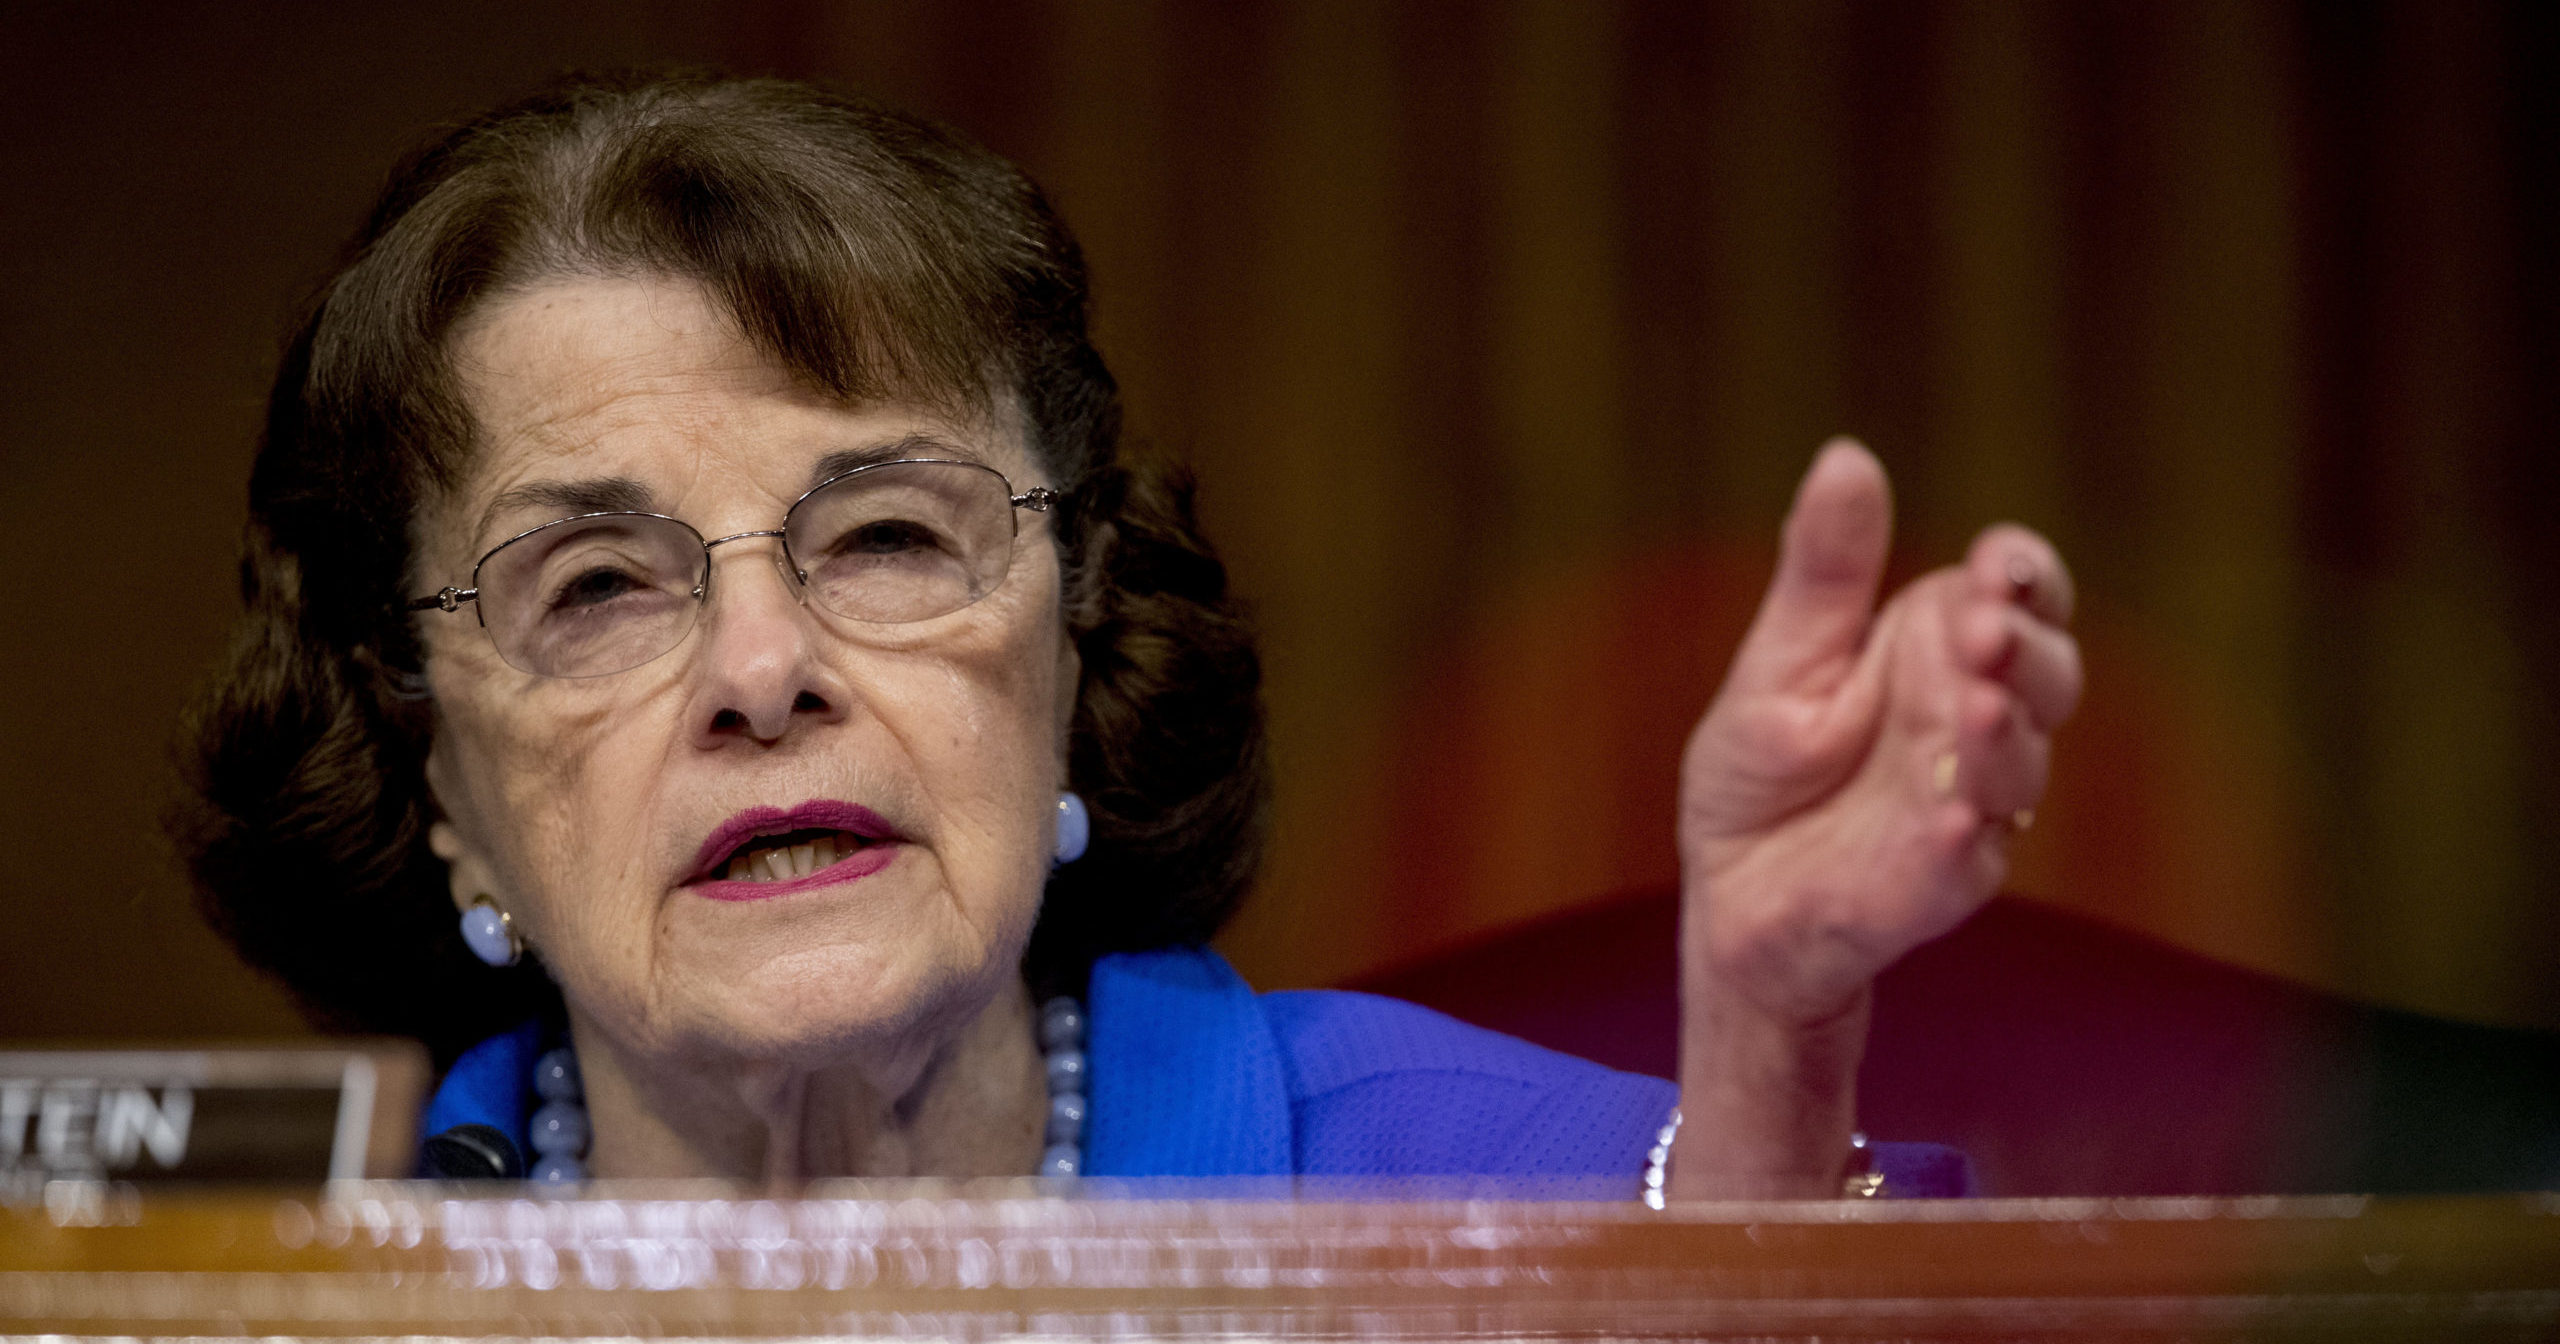 In this June 9, 2020, file photo, Sen. Dianne Feinstein of California speaks during a Senate Judiciary Committee hearing on Capitol Hill in Washington, D.C. Democrats are treading carefully on faith as they prepare to question President Donald Trump's Supreme Court nominee Amy Coney Barrett.